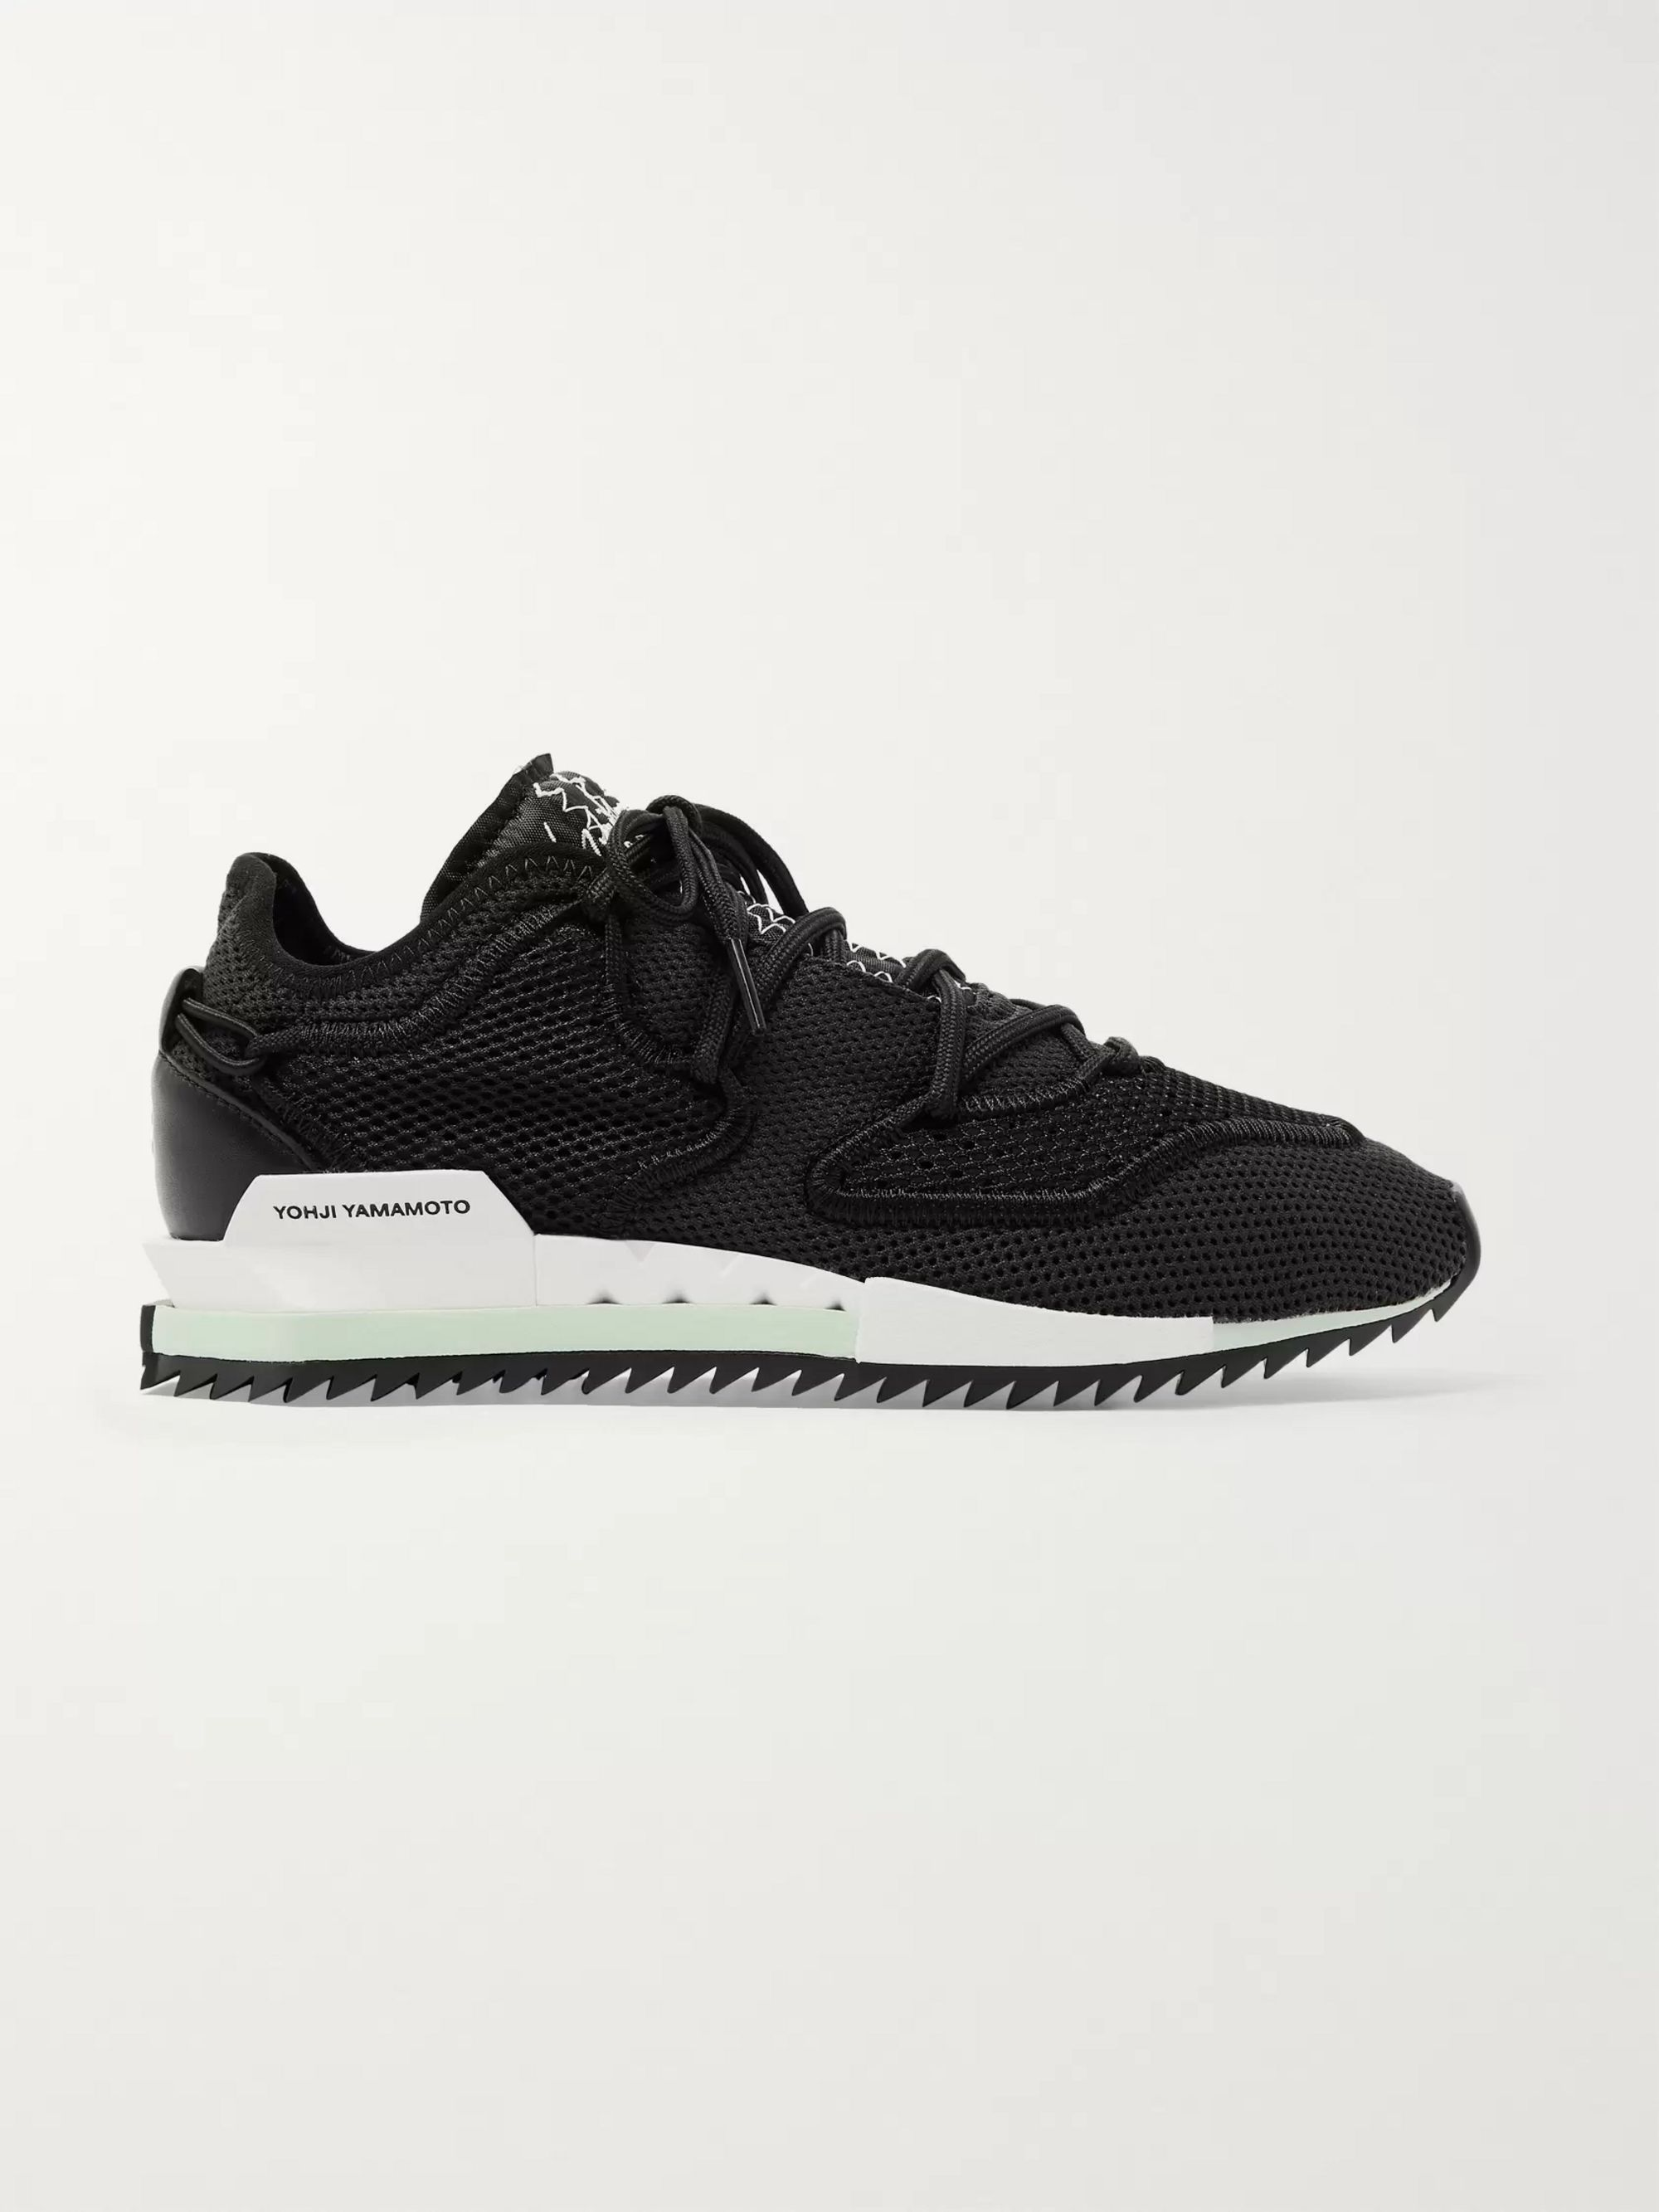 adidas Y 3 Yohji Run Fall Collection Available Now | Nice